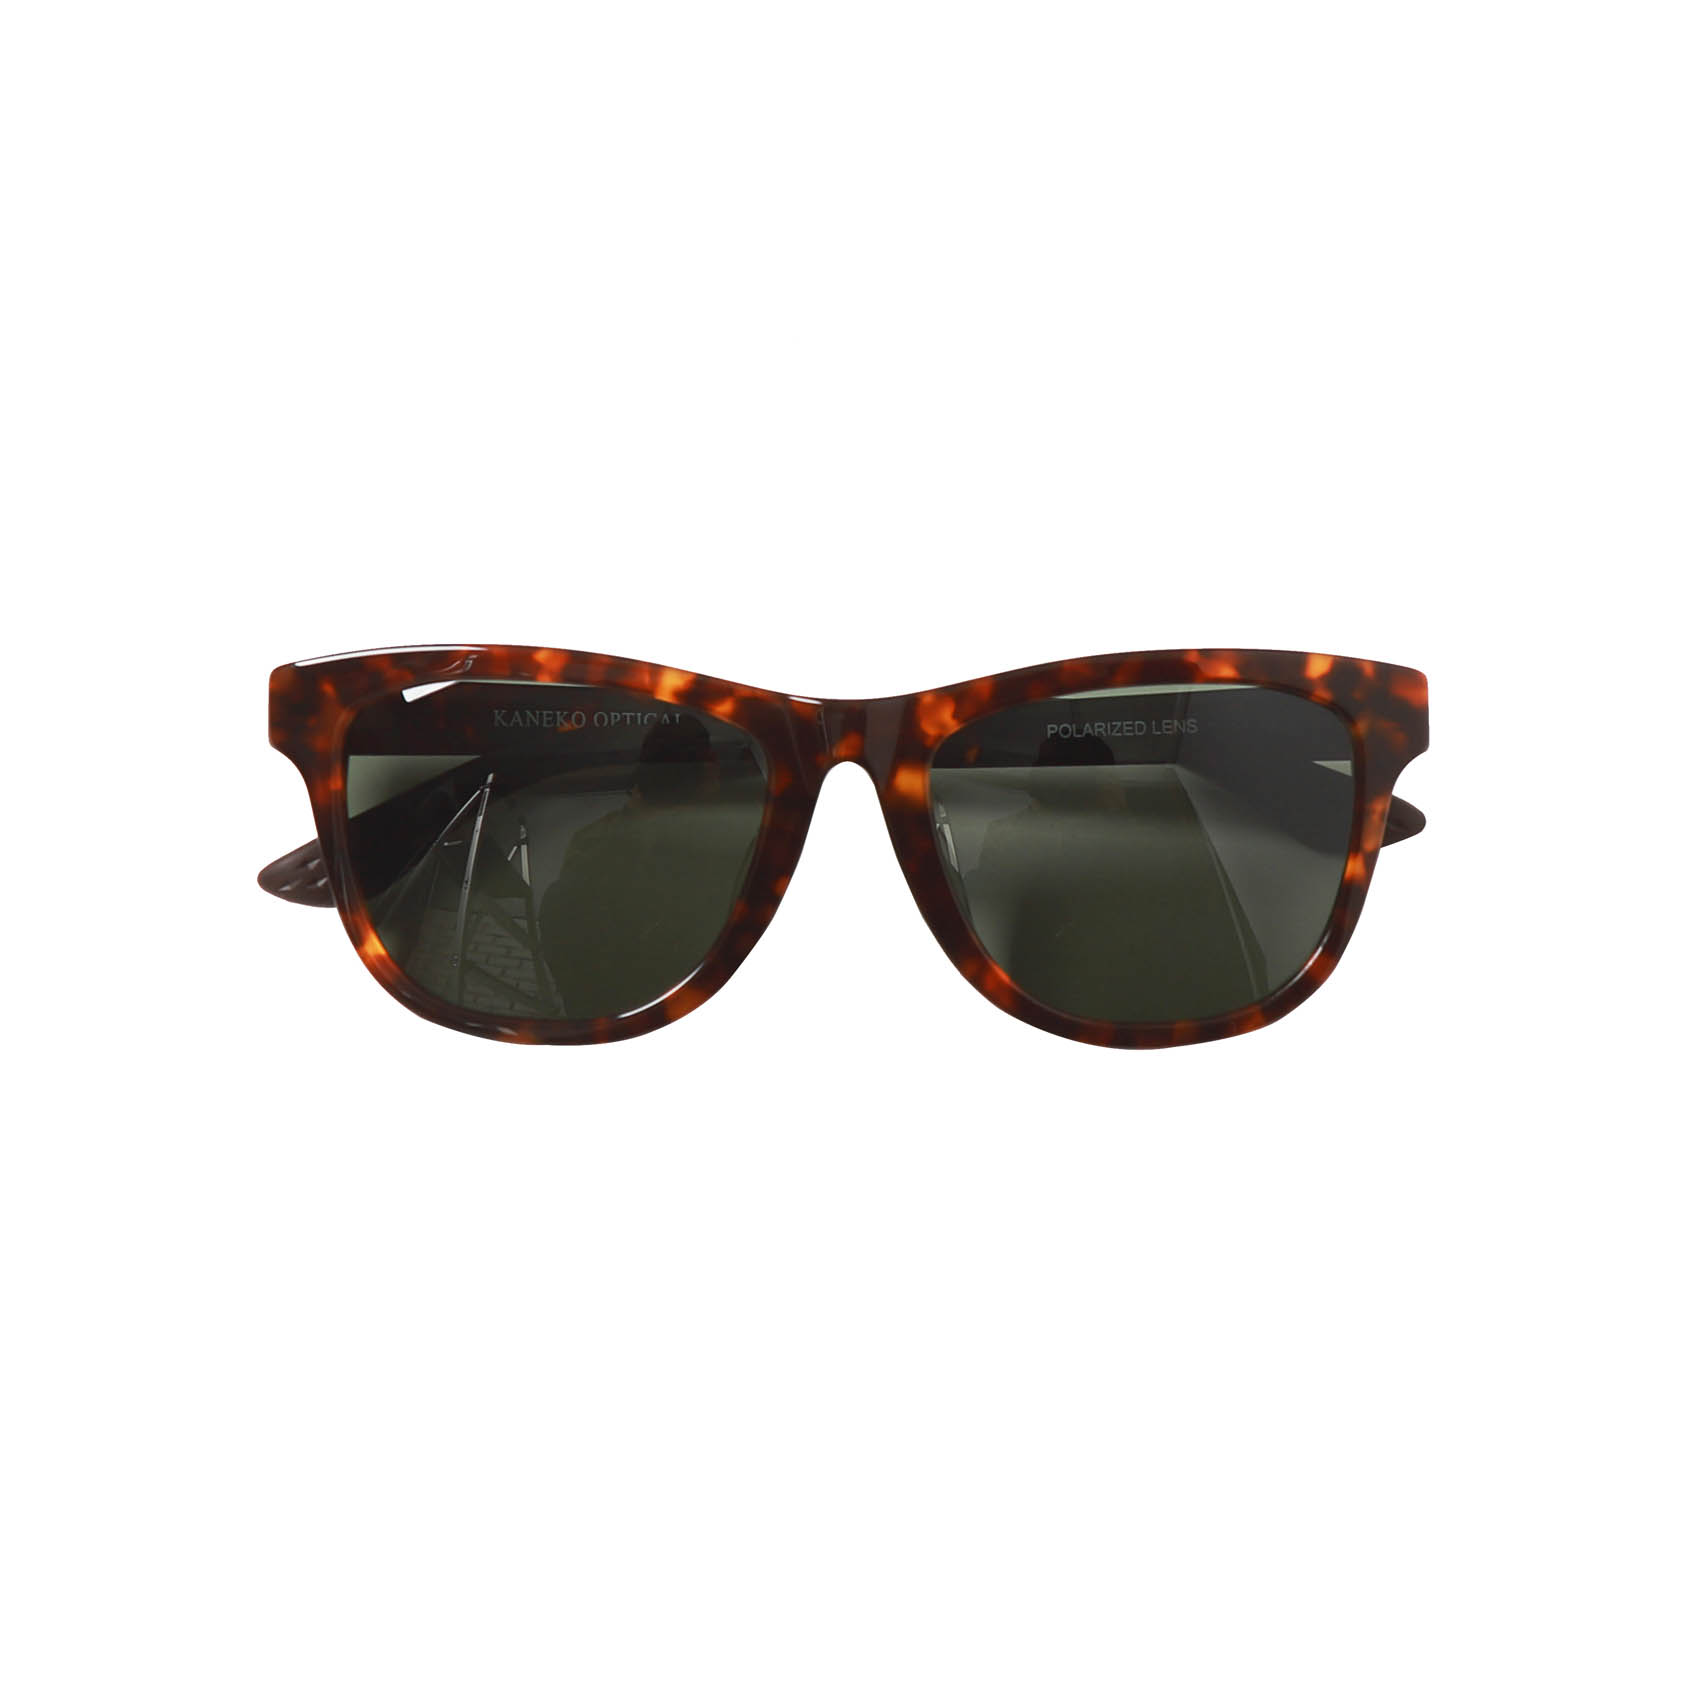 X KANEKO OPTICAL SUNGLASSES T6 - BROWN